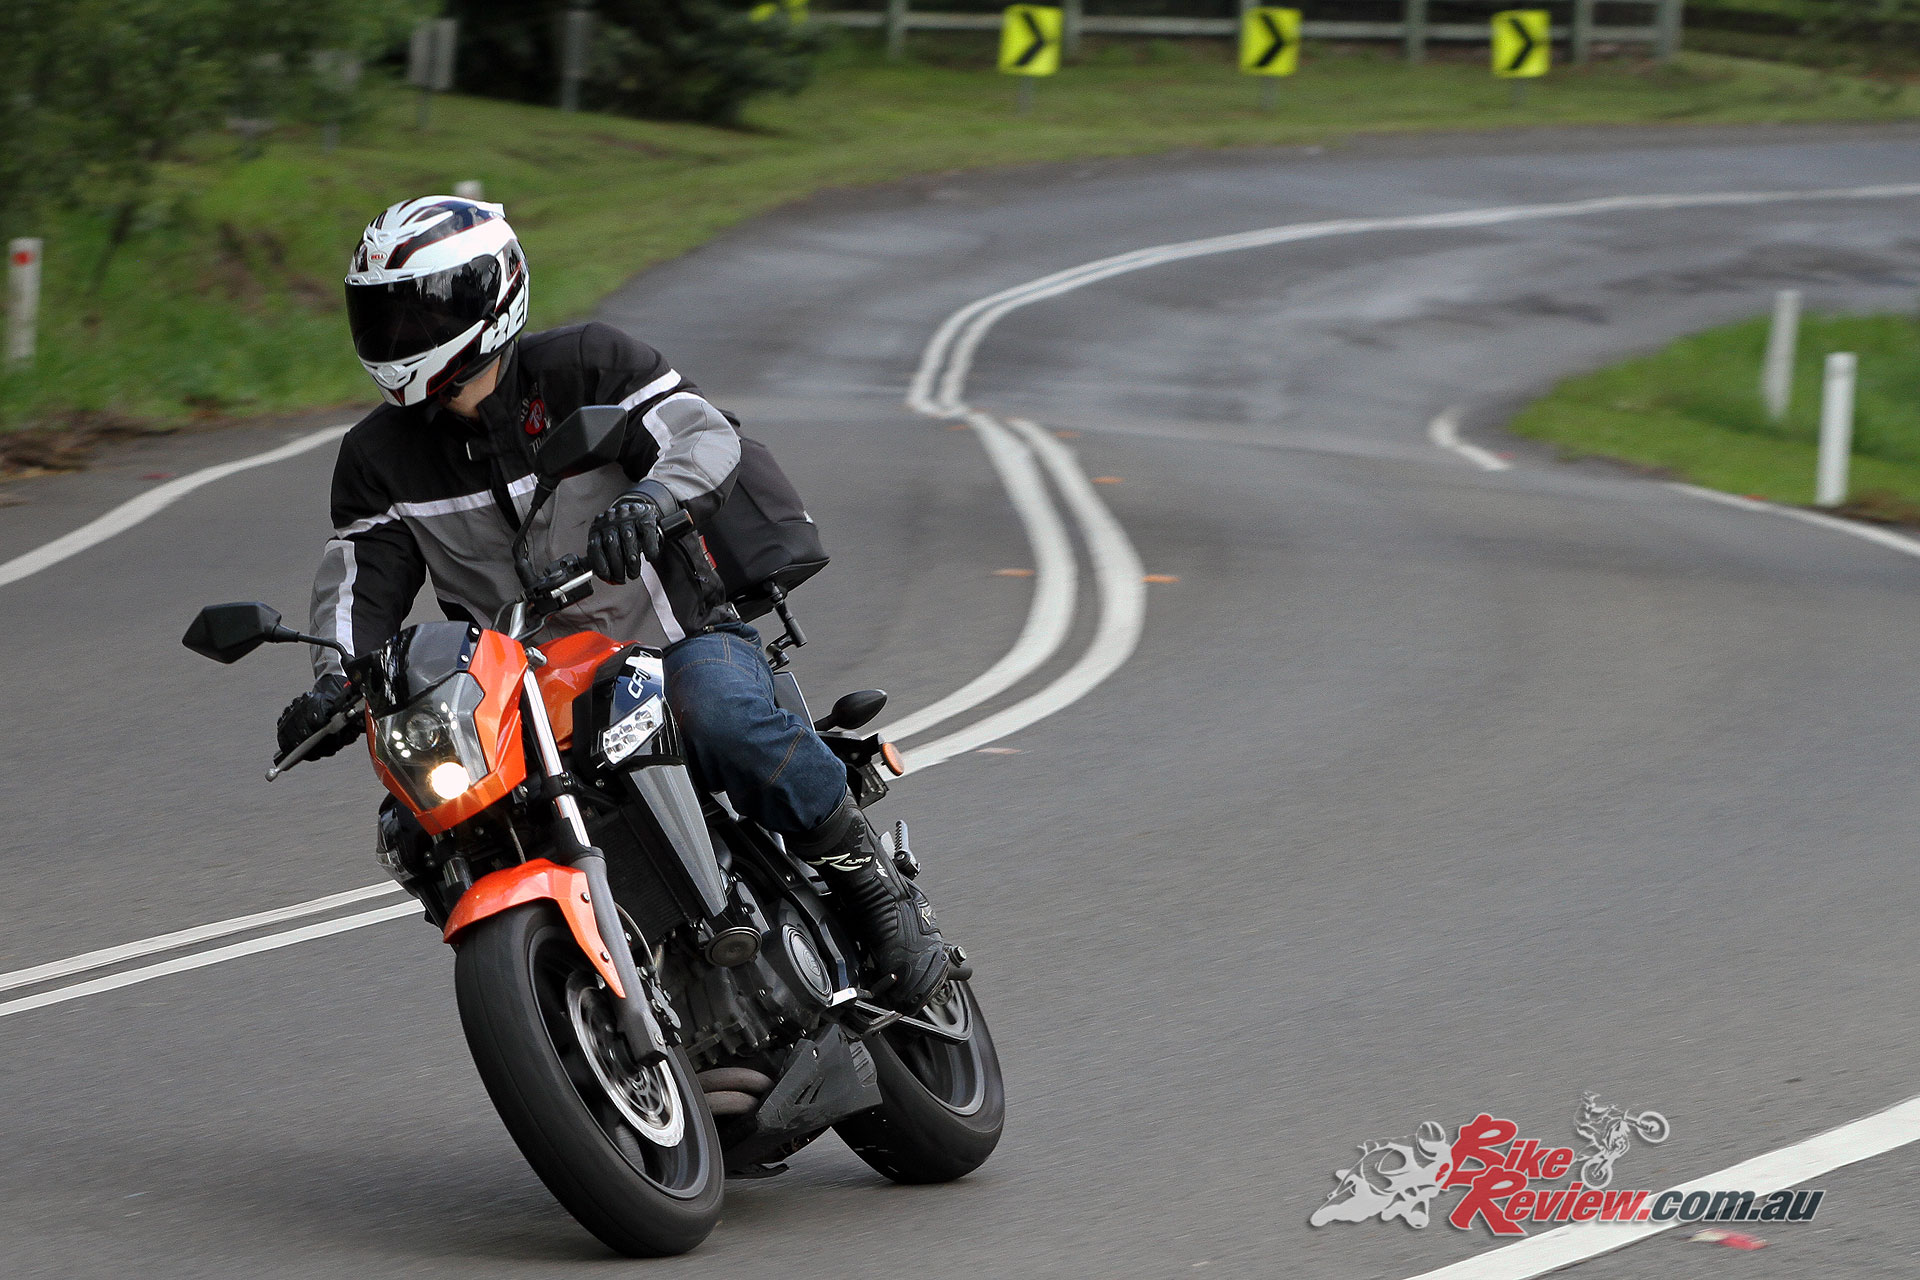 Dave had his previous model 650NK on the test and we swapped bikes regularly. They are very different bikes, with the previous model softer, taller and more suited to longer distances. They also handle very differently.